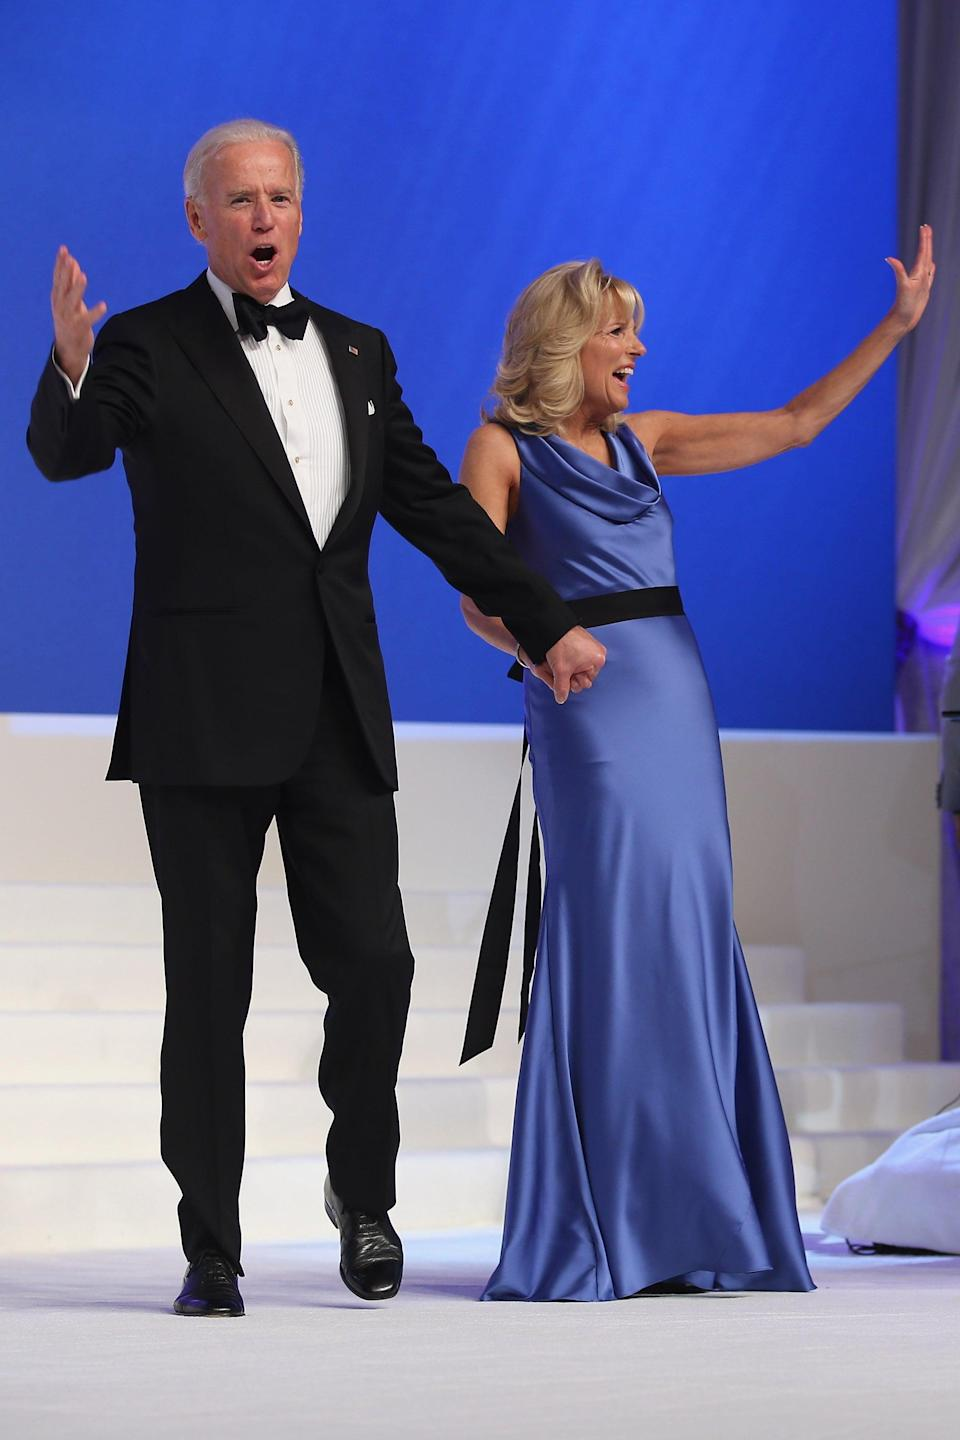 """<p>Jill chose this blue silk gown for the Inaugural Ball in 2013, completing her homage to the """"red and blue"""" colors of the US flag. The look was <a href=""""https://twitter.com/verawang/status/293564512102129664"""" class=""""link rapid-noclick-resp"""" rel=""""nofollow noopener"""" target=""""_blank"""" data-ylk=""""slk:created by American fashion designer Vera Wang"""">created by American fashion designer Vera Wang</a>, who is of Chinese descent. """"What a joy, honor and privilege to have dressed Dr Jill Biden for tonight's Inauguration. A beautiful, spirited, accomplished woman!"""" Wang famously posted on Twitter.</p>"""